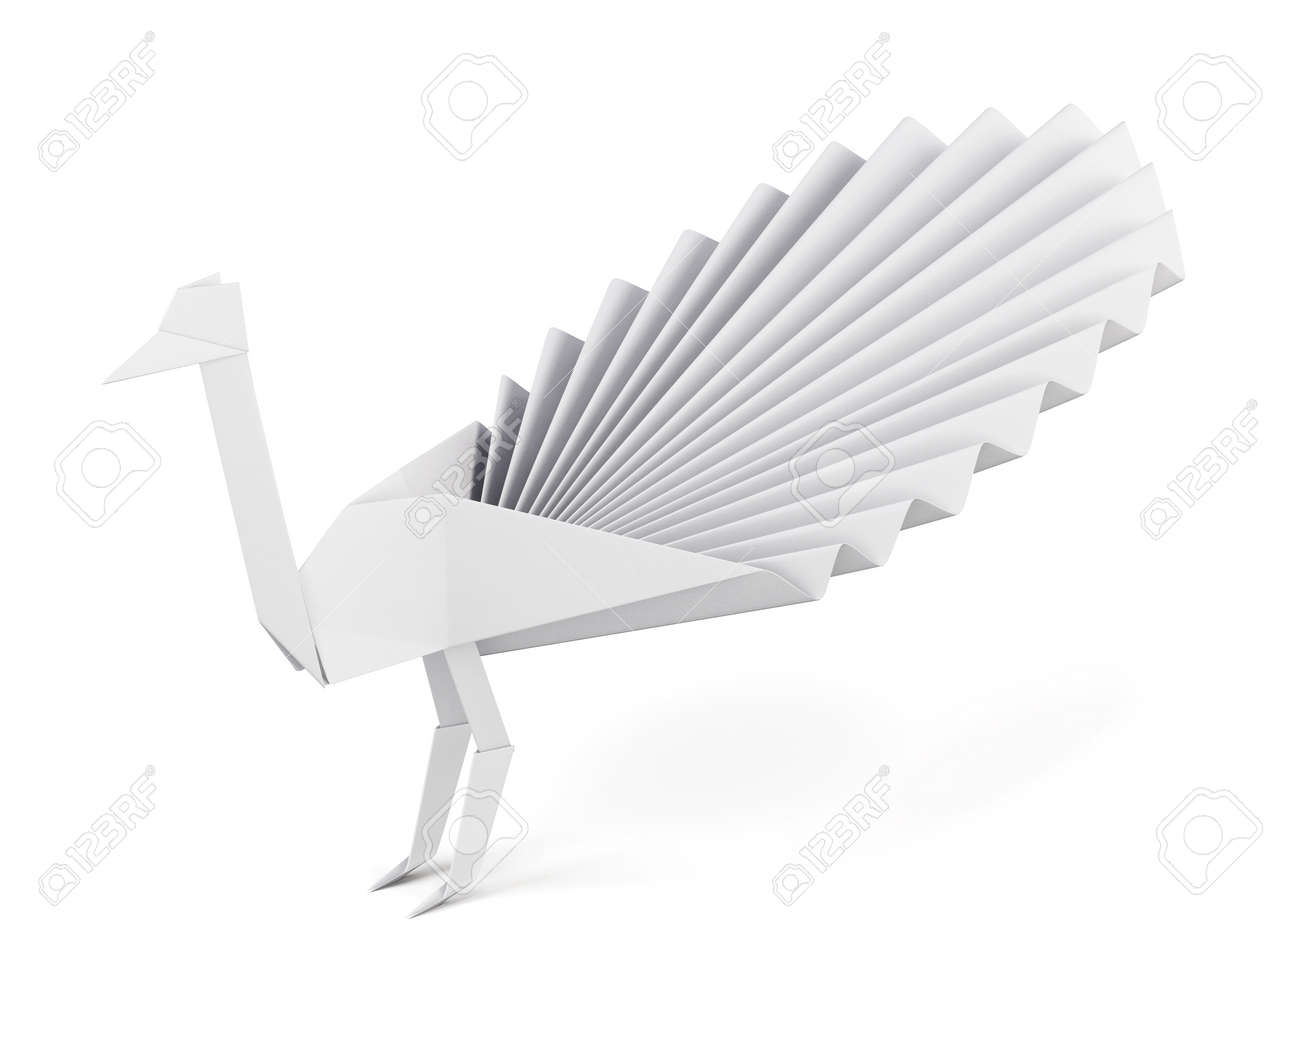 Origami Peacock Made Of Paper Isolated On White Background Side View